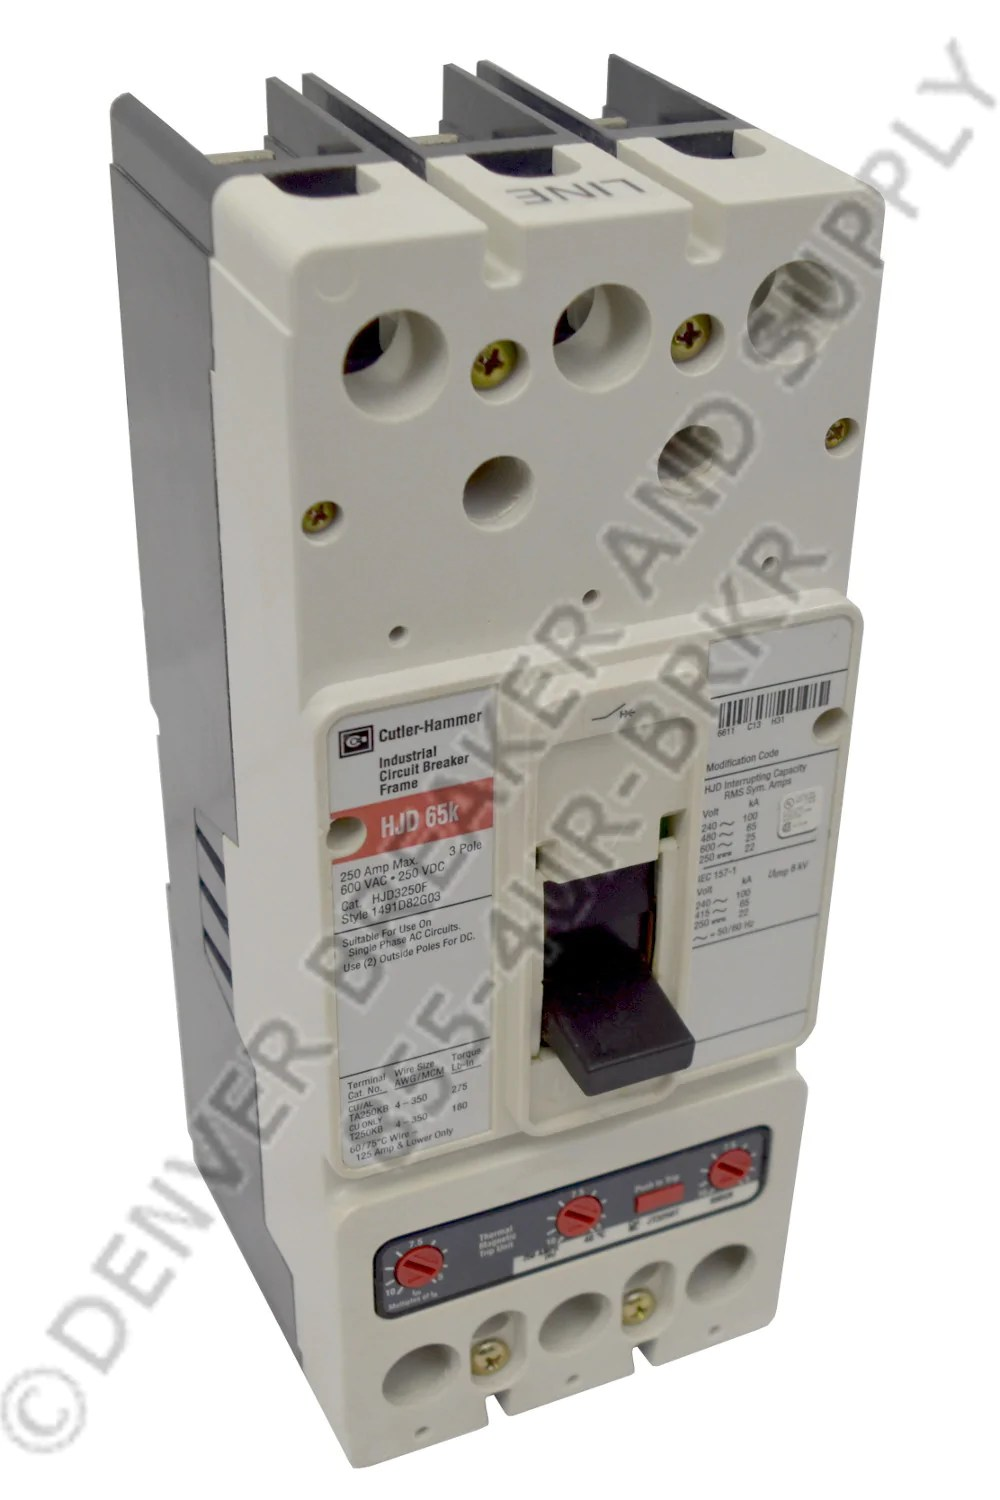 medium resolution of cutler hammer hjddc3100 circuit breaker